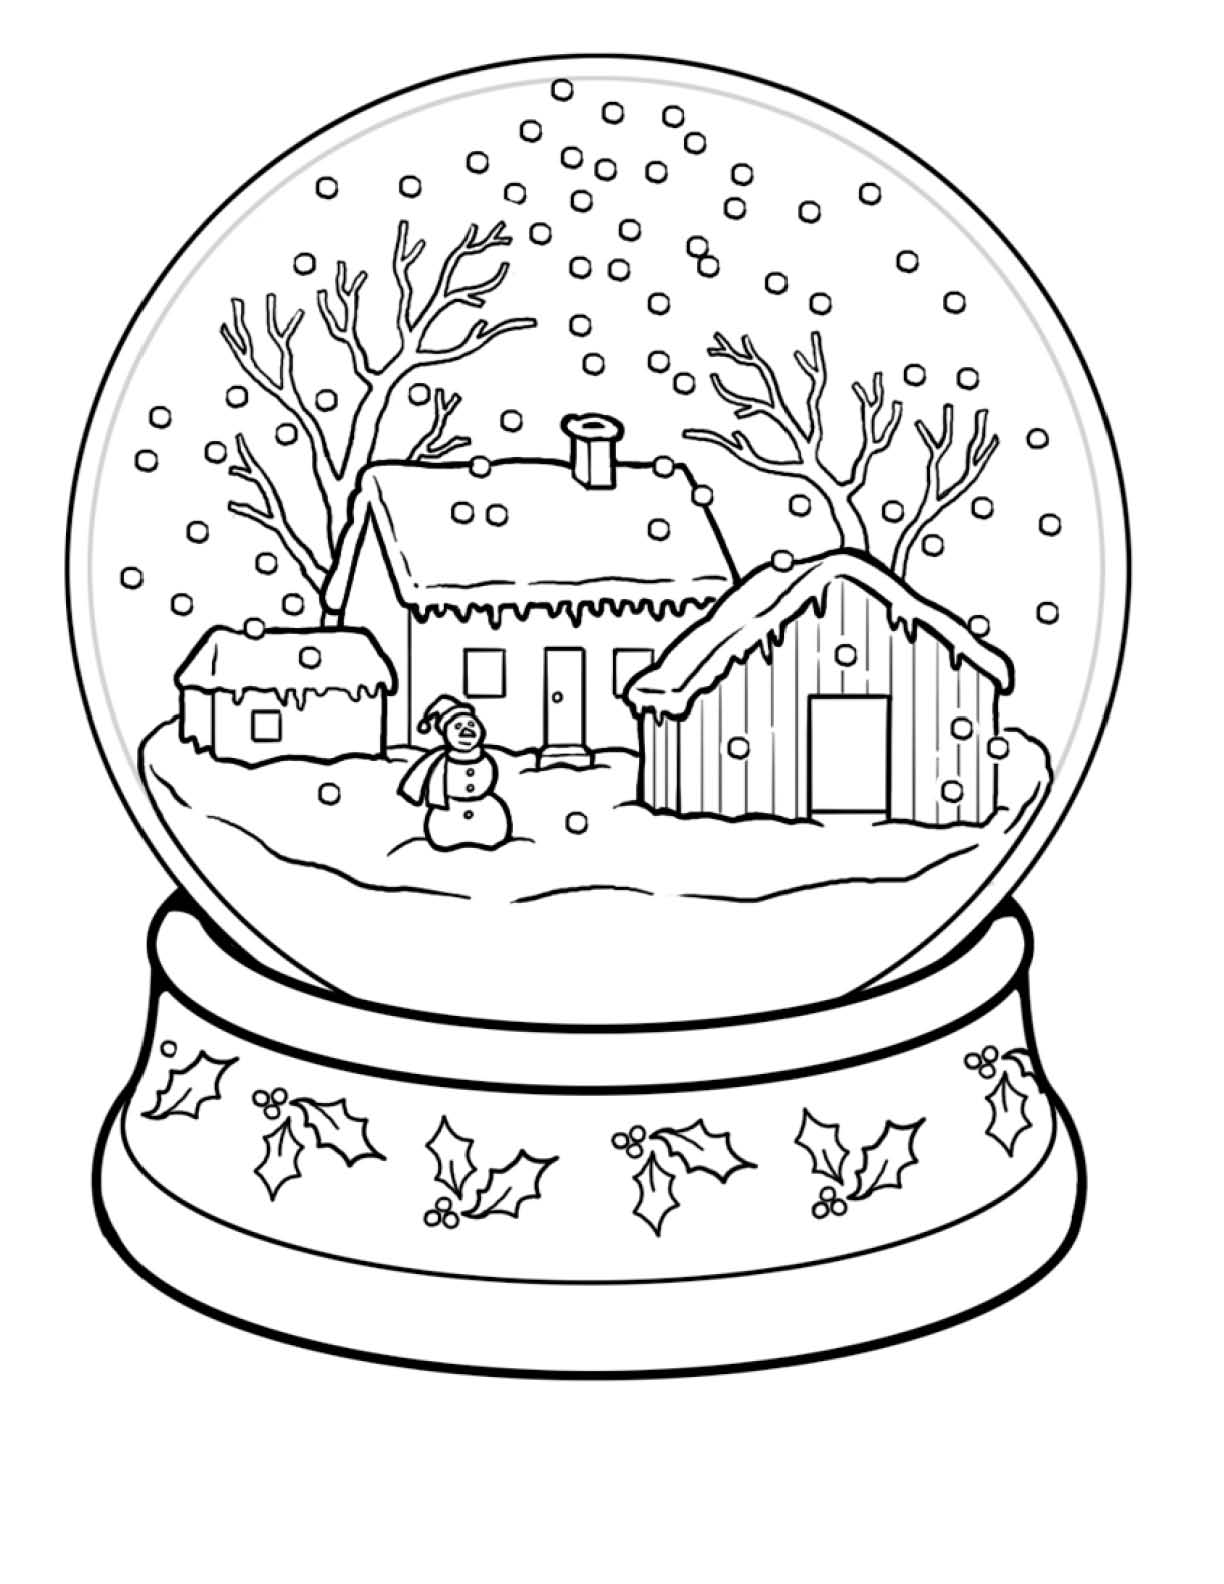 Winter Drawing at GetDrawings.com | Free for personal use Winter ...